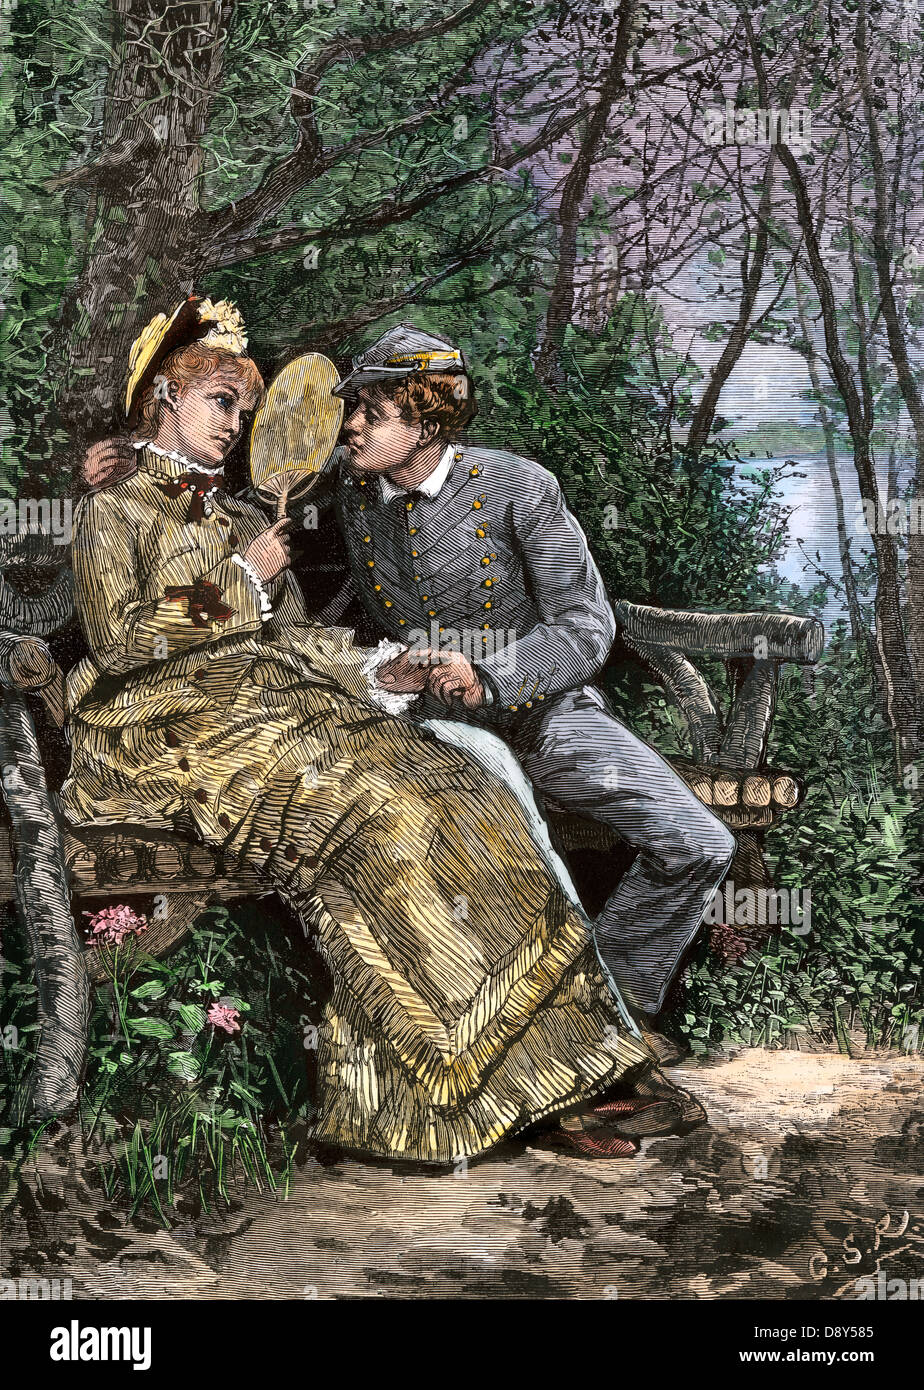 West Point cadet courting a young woman, 1870s. Hand-colored woodcut - Stock Image